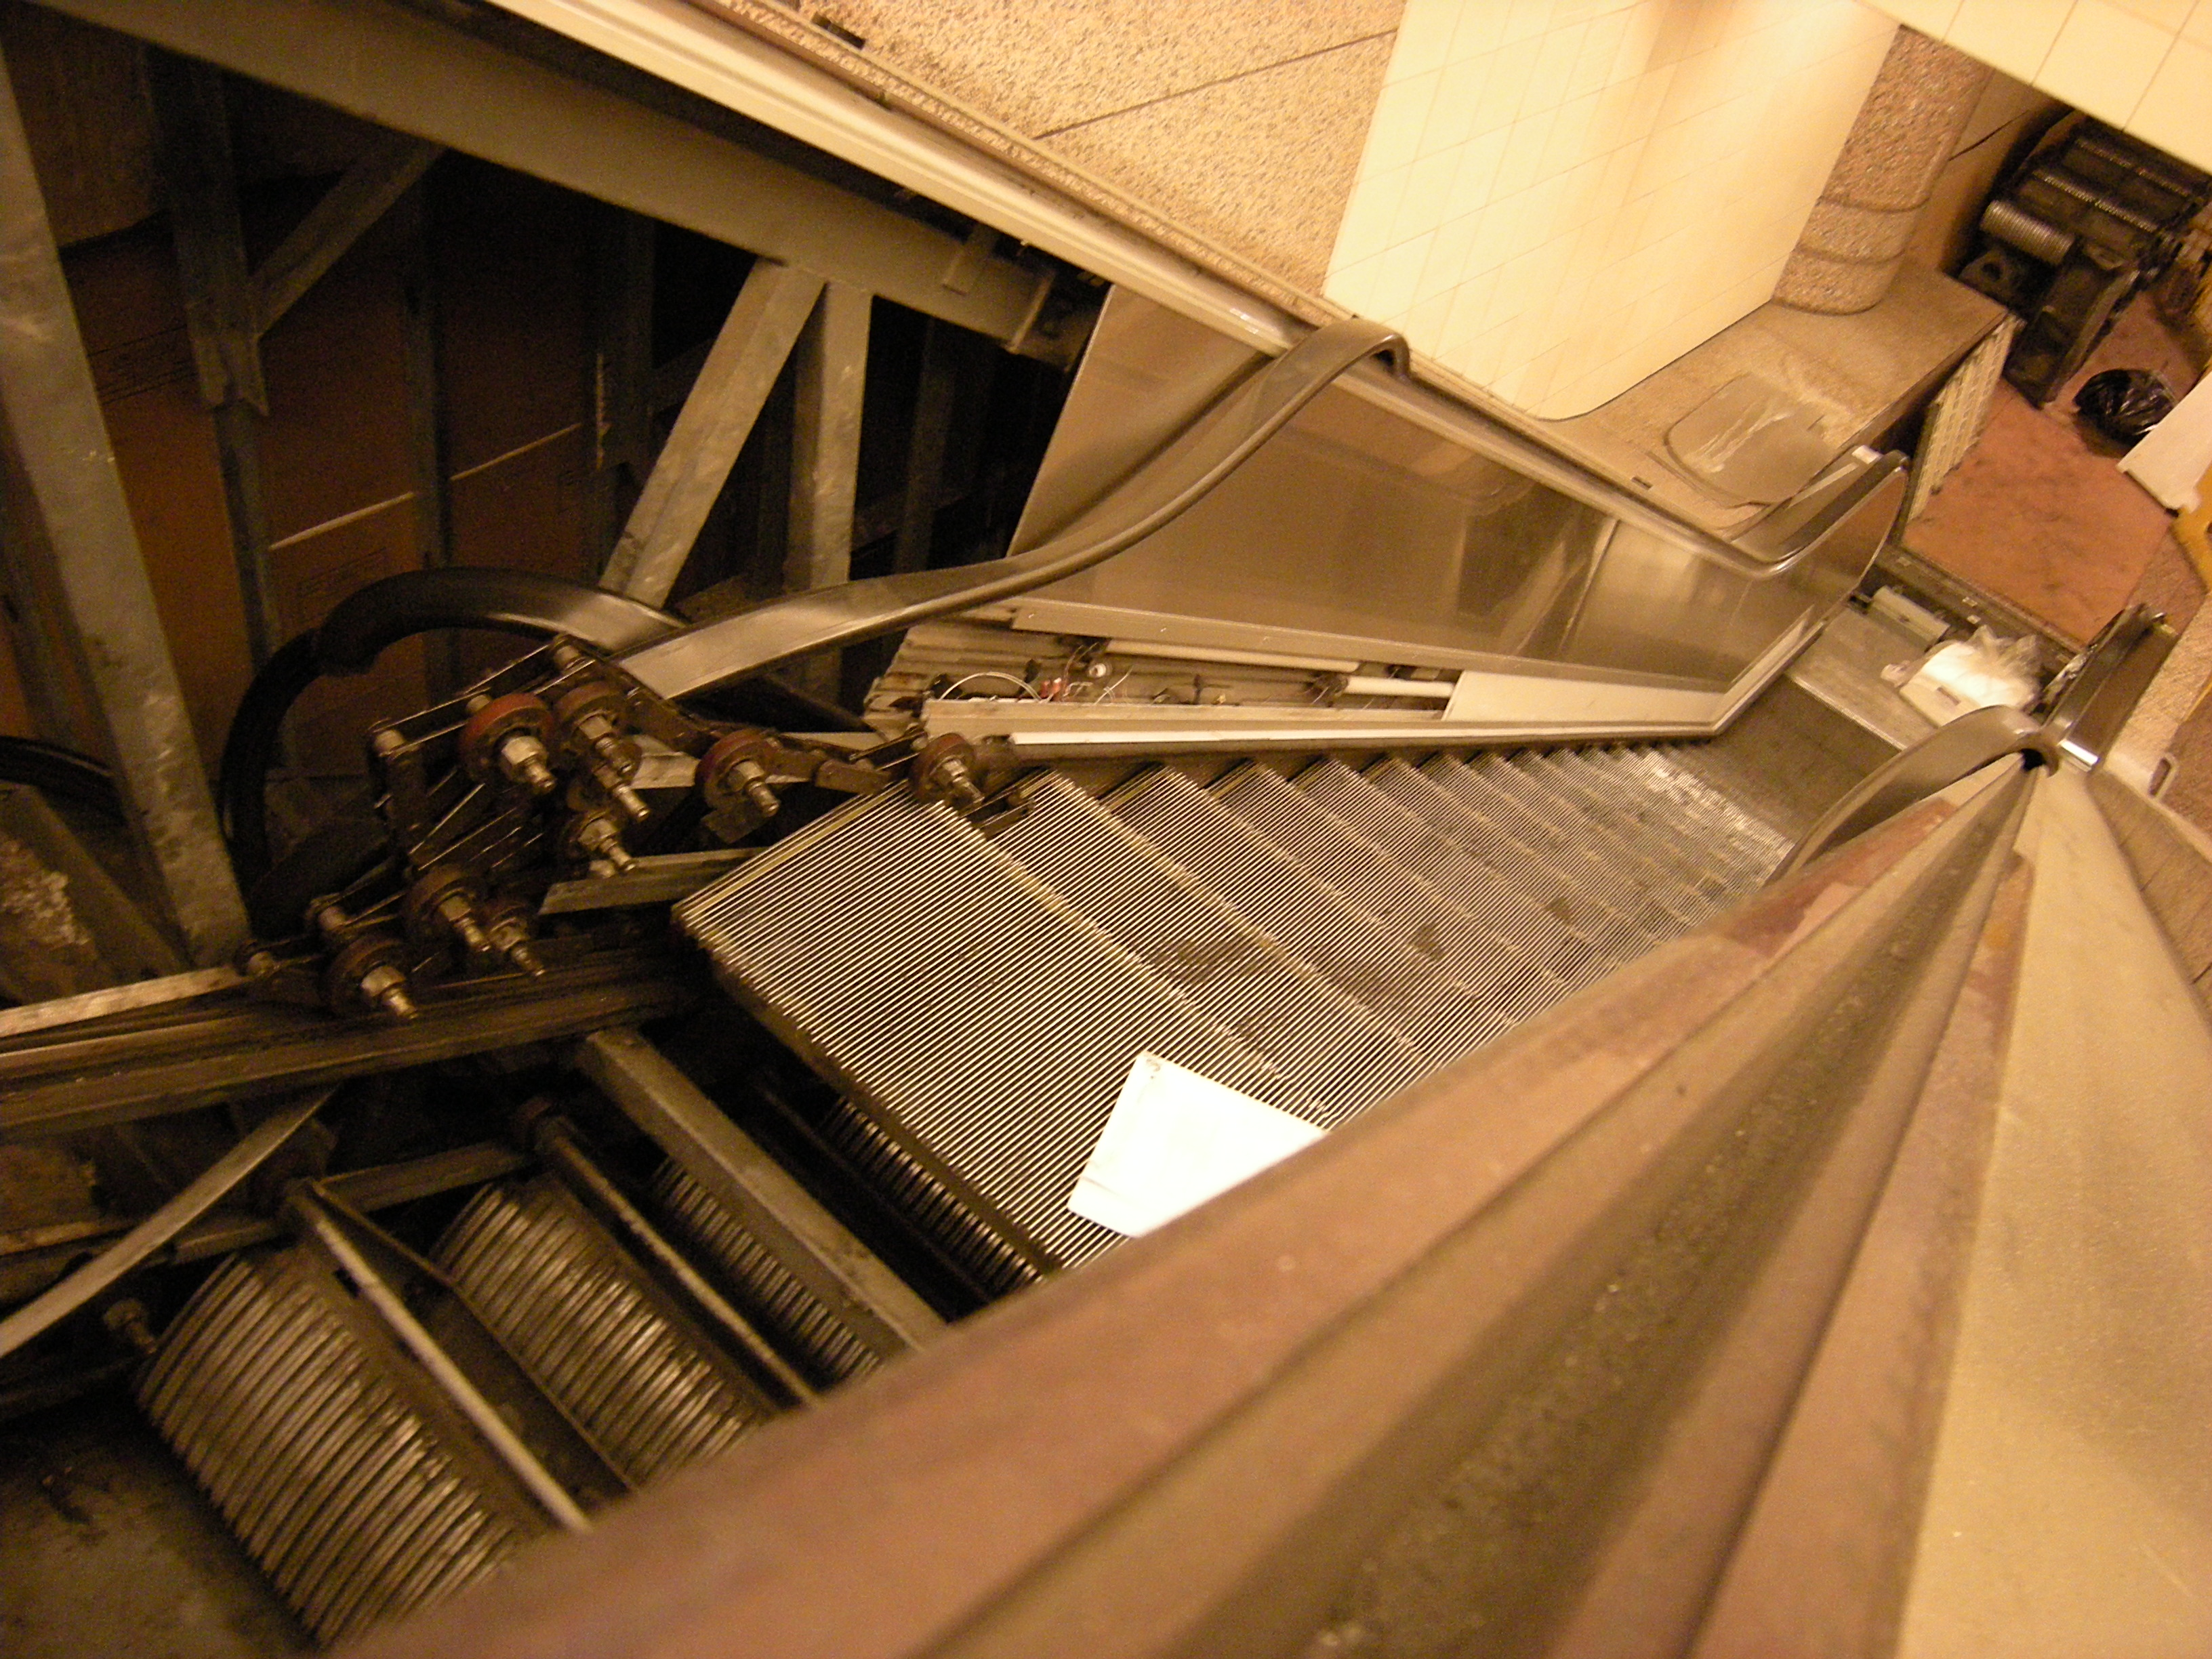 View of escalator steps on continuous chain.